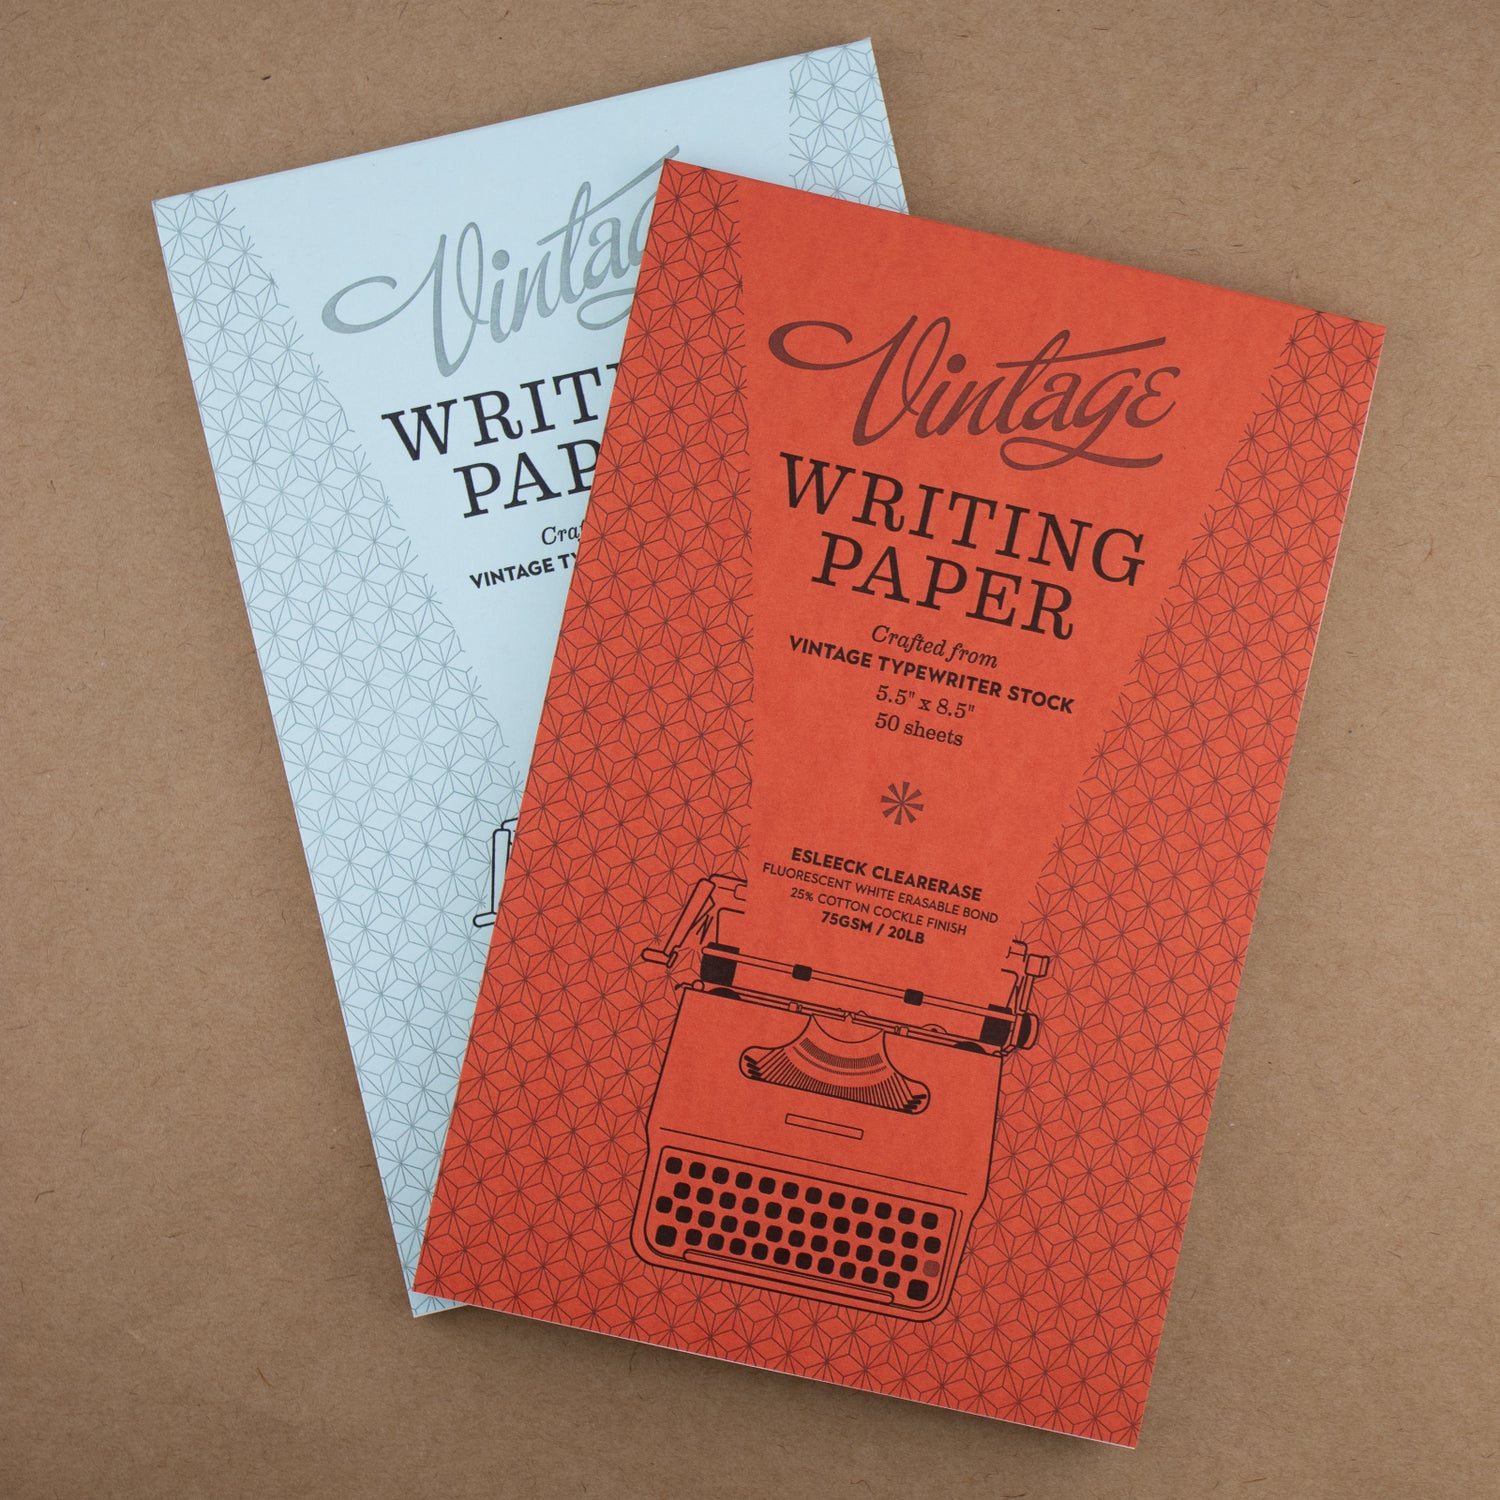 Vintage Writing Paper Pad (50 Sheets Red or Blue Cover/Ruling)